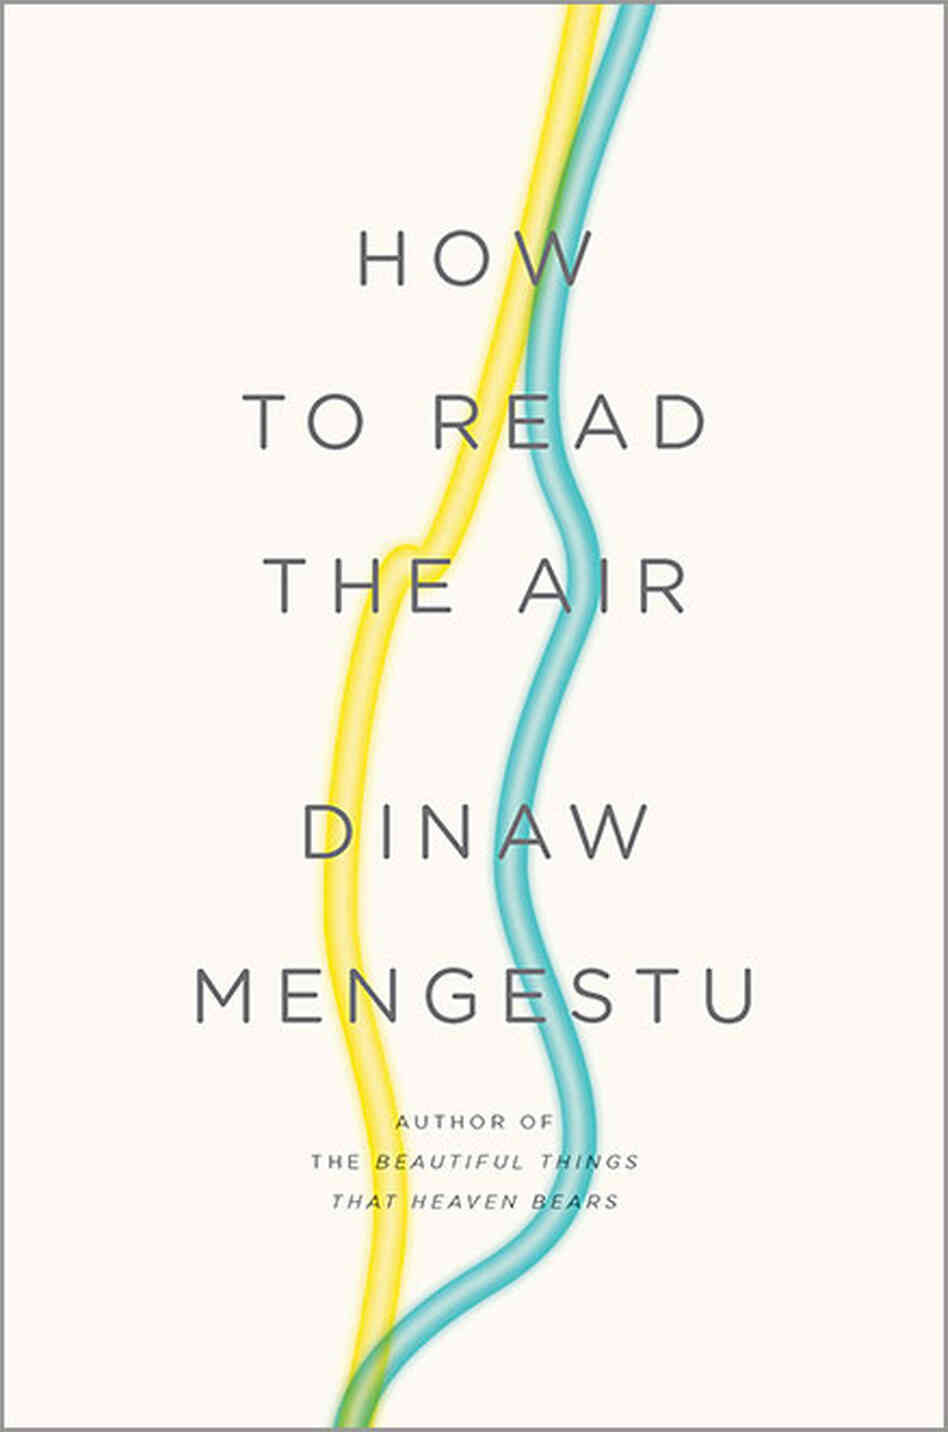 'How To Read The Air'